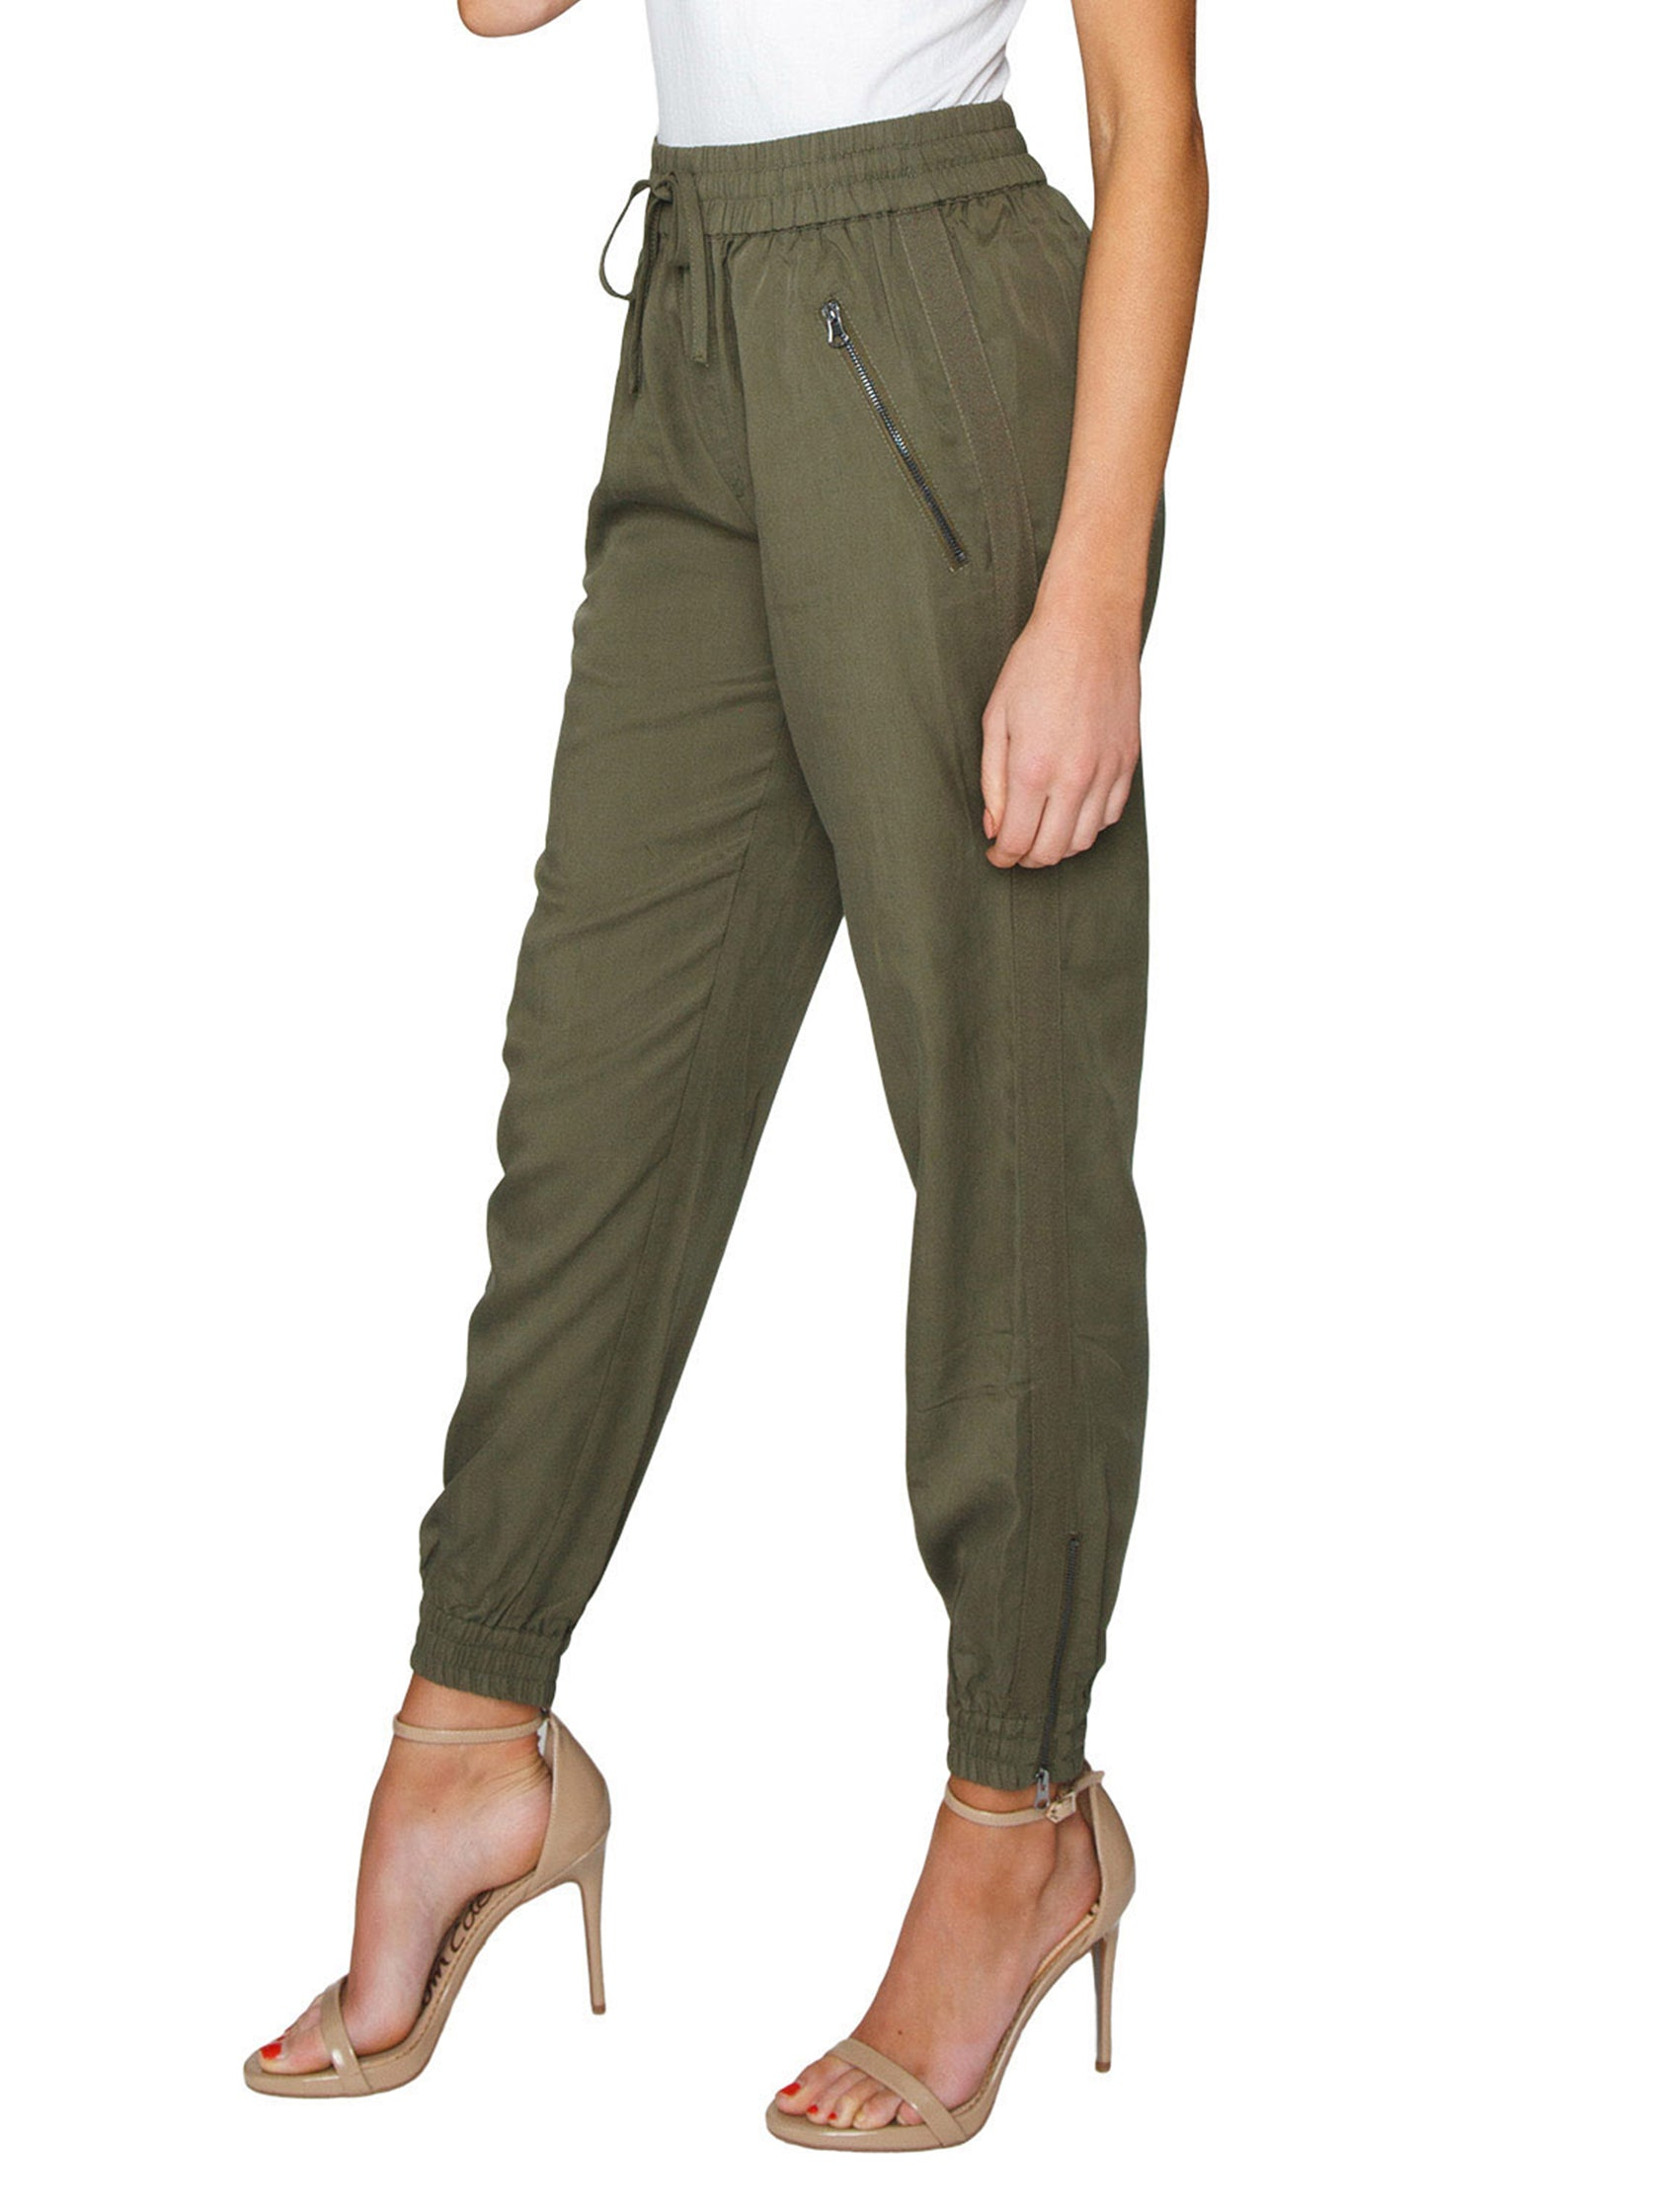 Women wearing a pants rental from FashionPass called Utility Jogger Pants